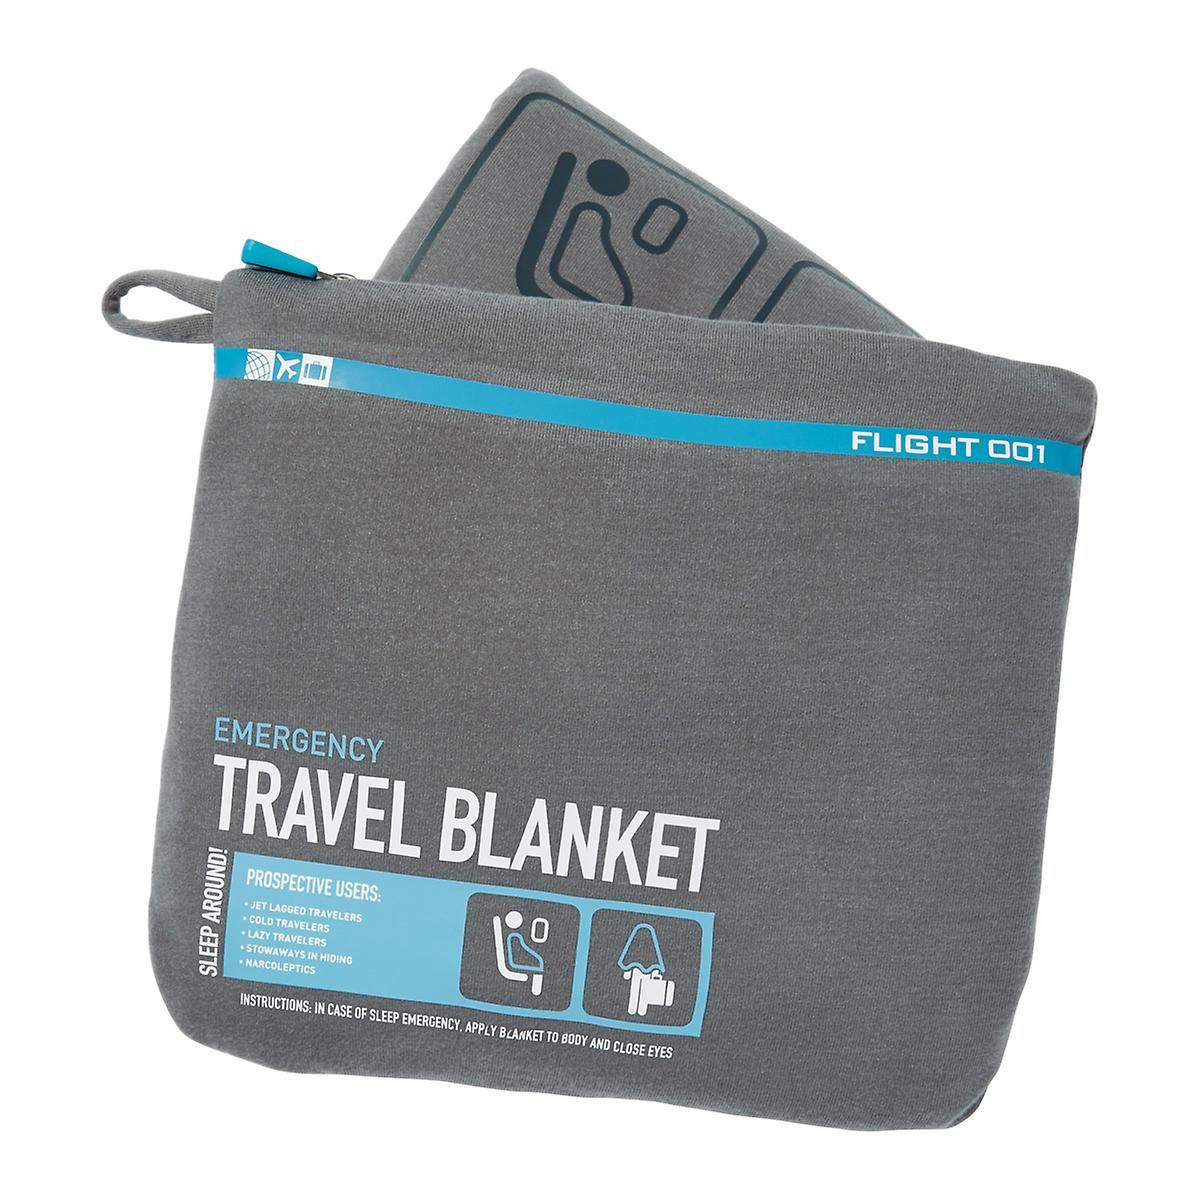 Flight 001 Emergency Travel Blanket The Container Store